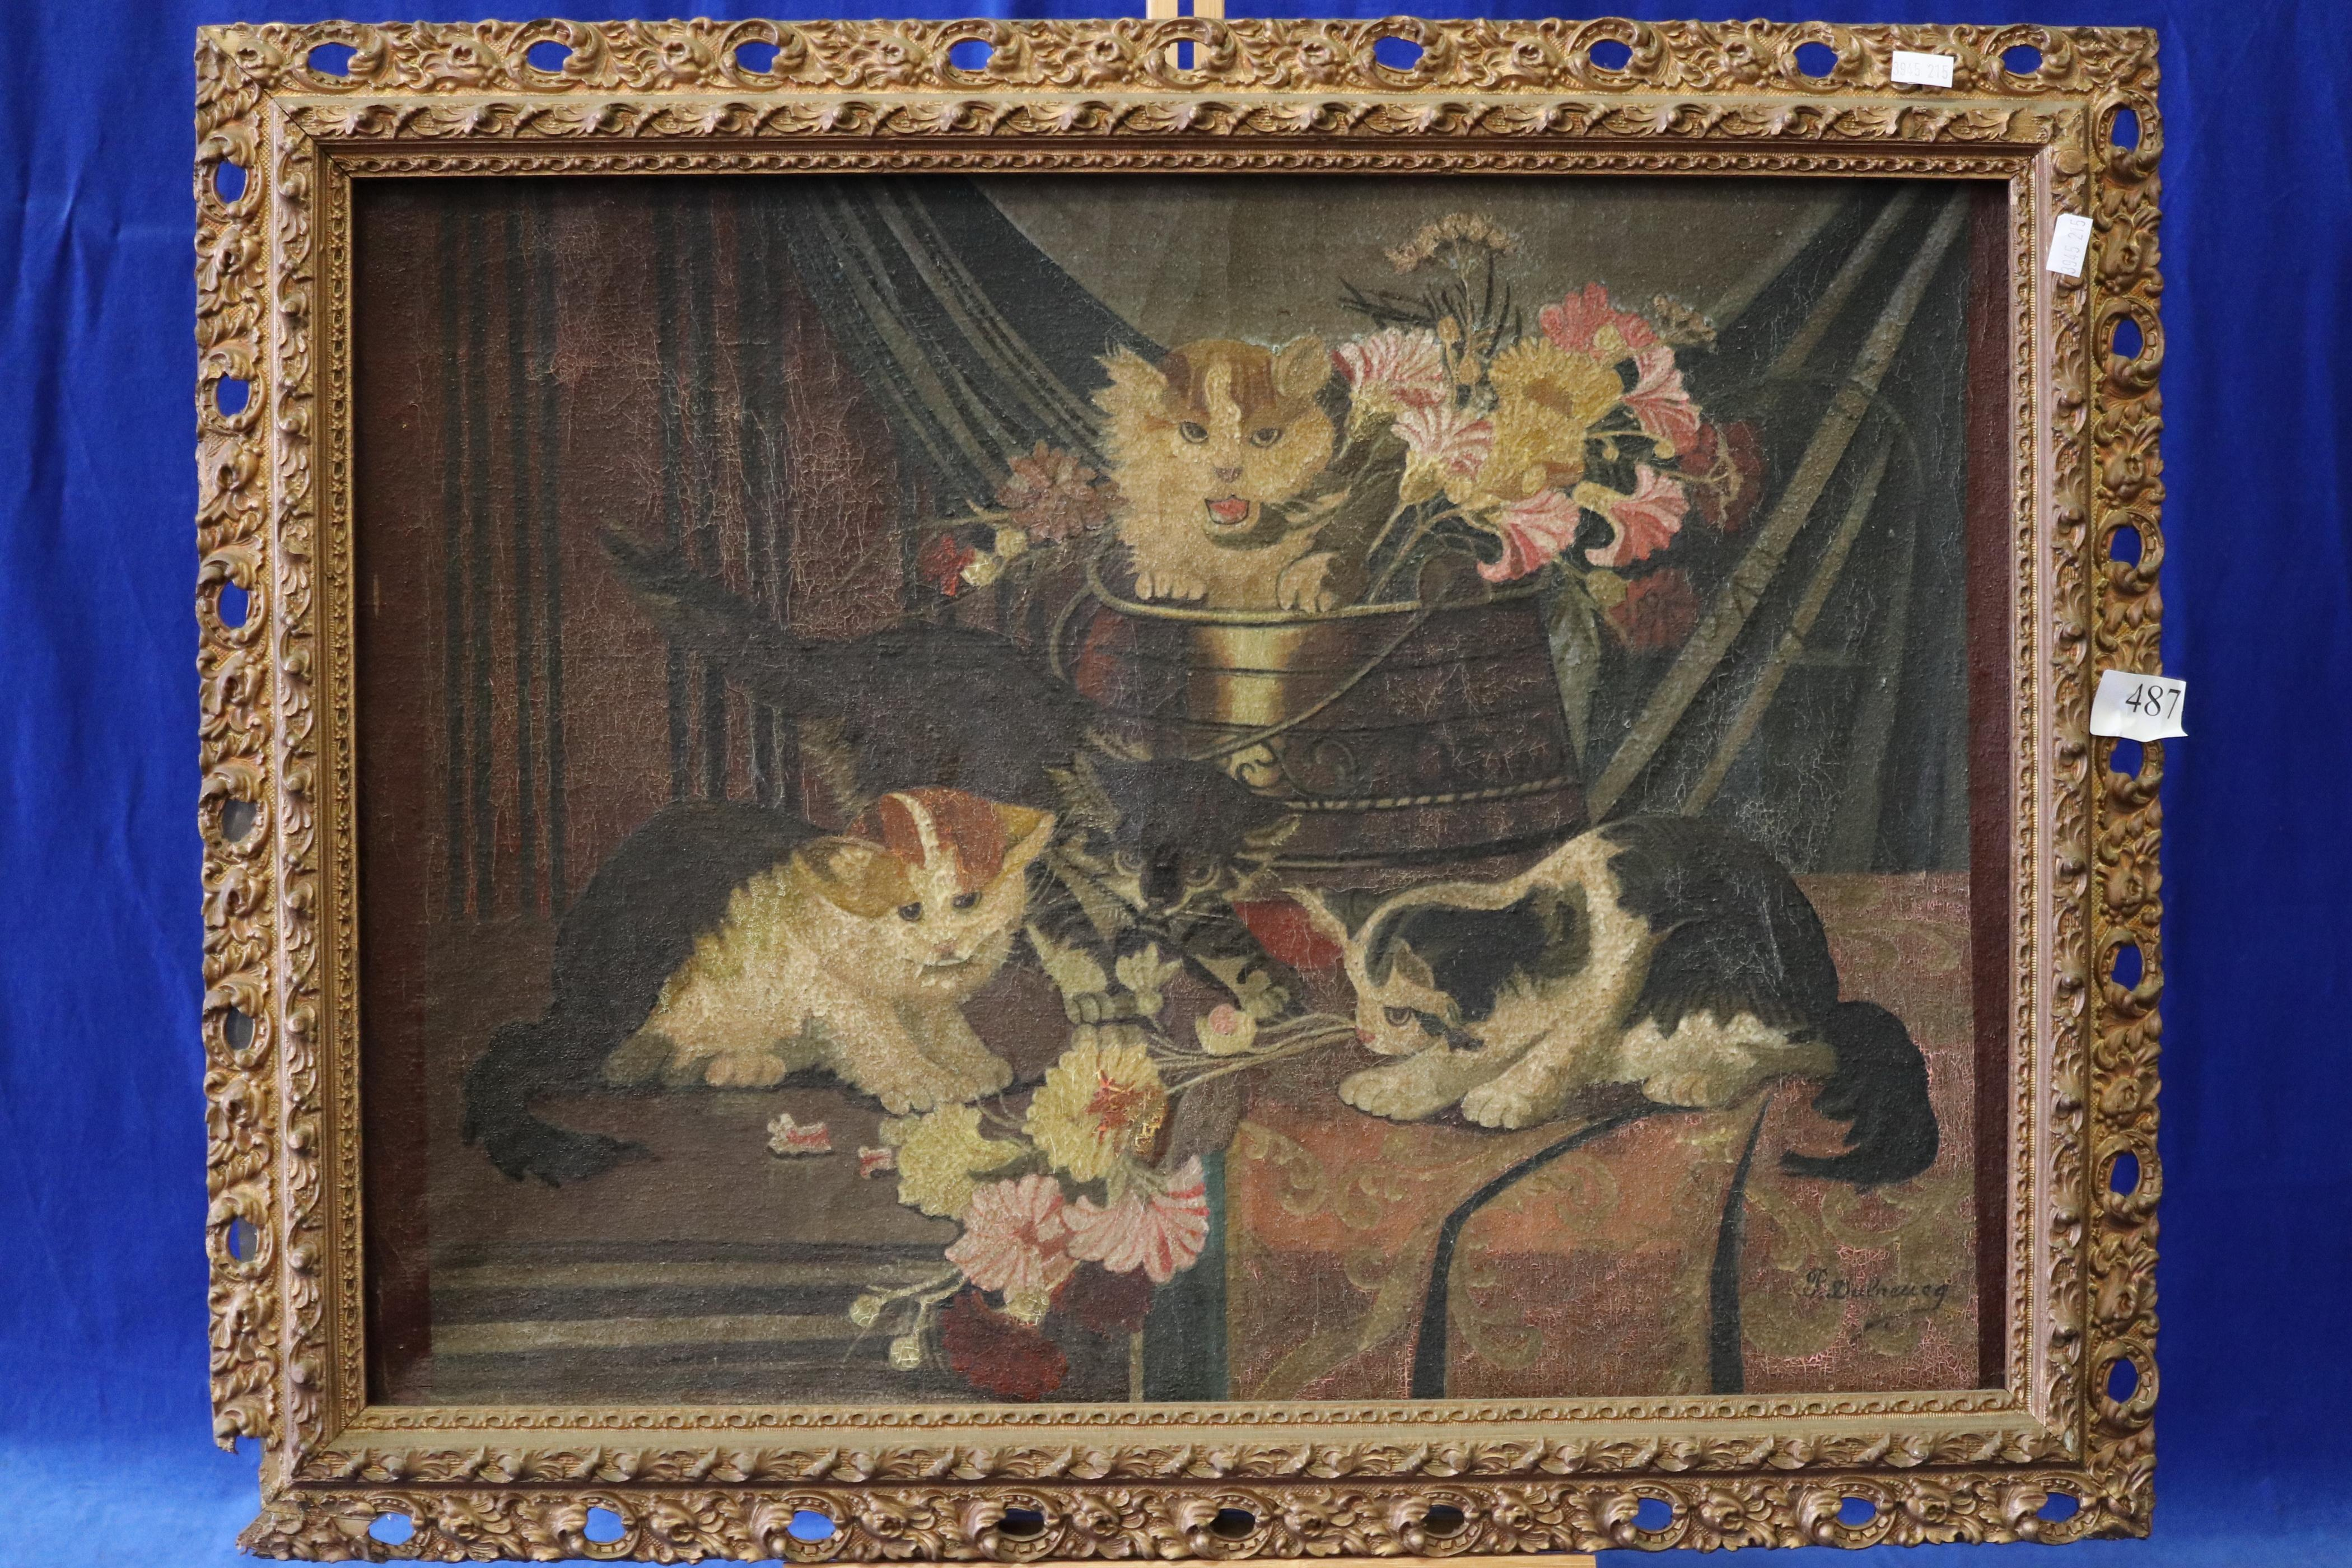 ARTIST UNKNOWN, CATS IN FLOWER POT, LATE 19TH/EARLY 20TH CENTURY, OIL ON CANVAS, SIGNED LOWER RIGHT, UNREADABLE, MEASURES 34CM X 58CM (CRACKLING AND WEAR TO CANVAS)